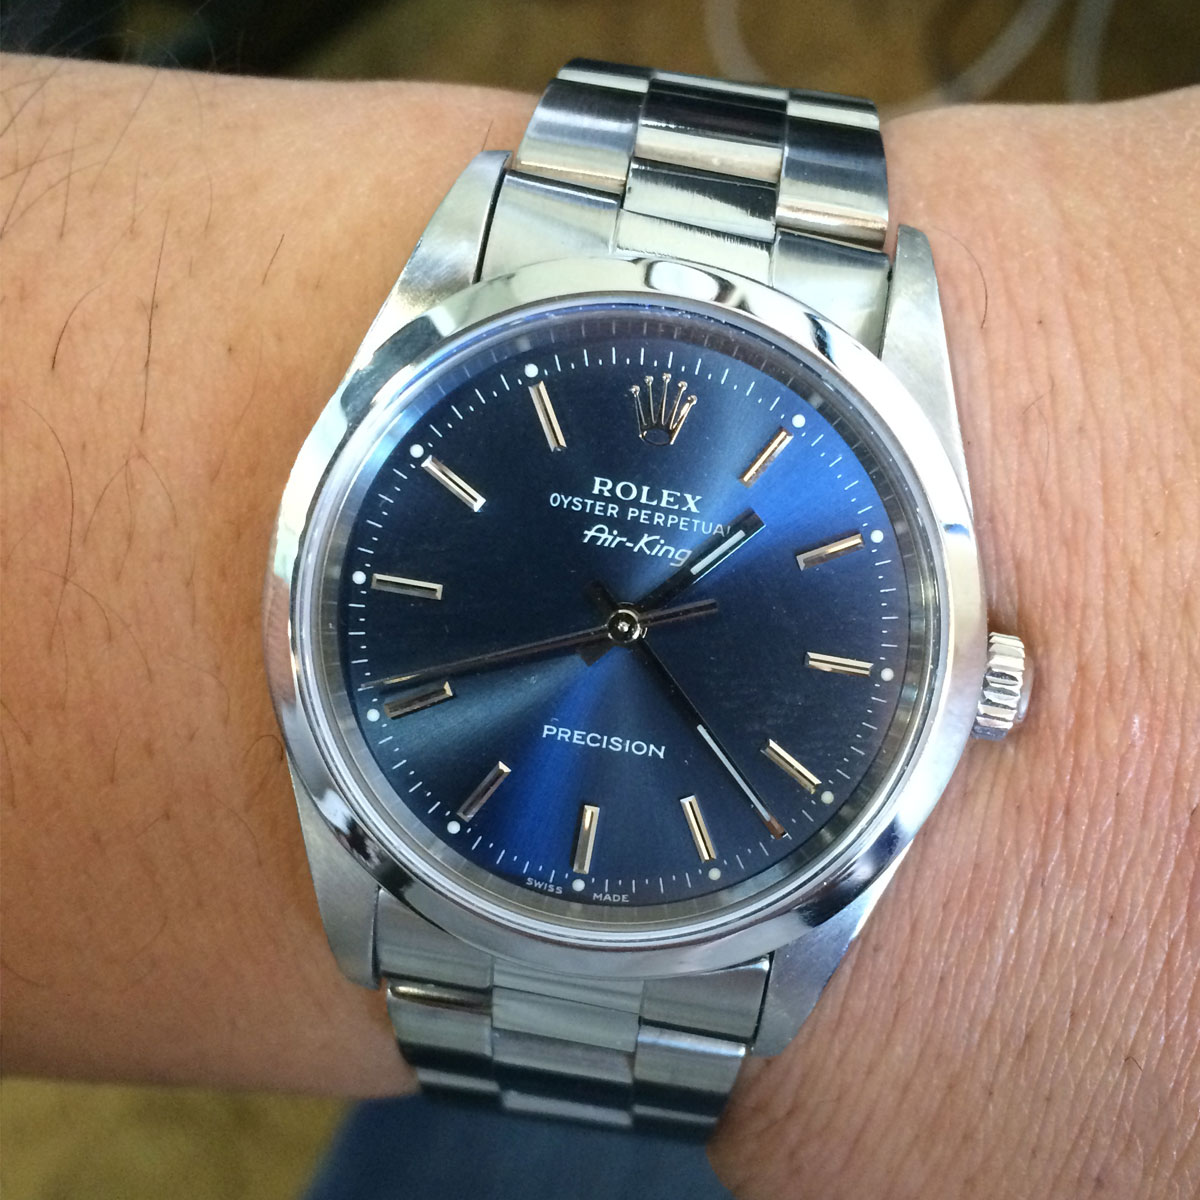 Rolex 16610 14000 air king blue dial steel watch for Rolex air king